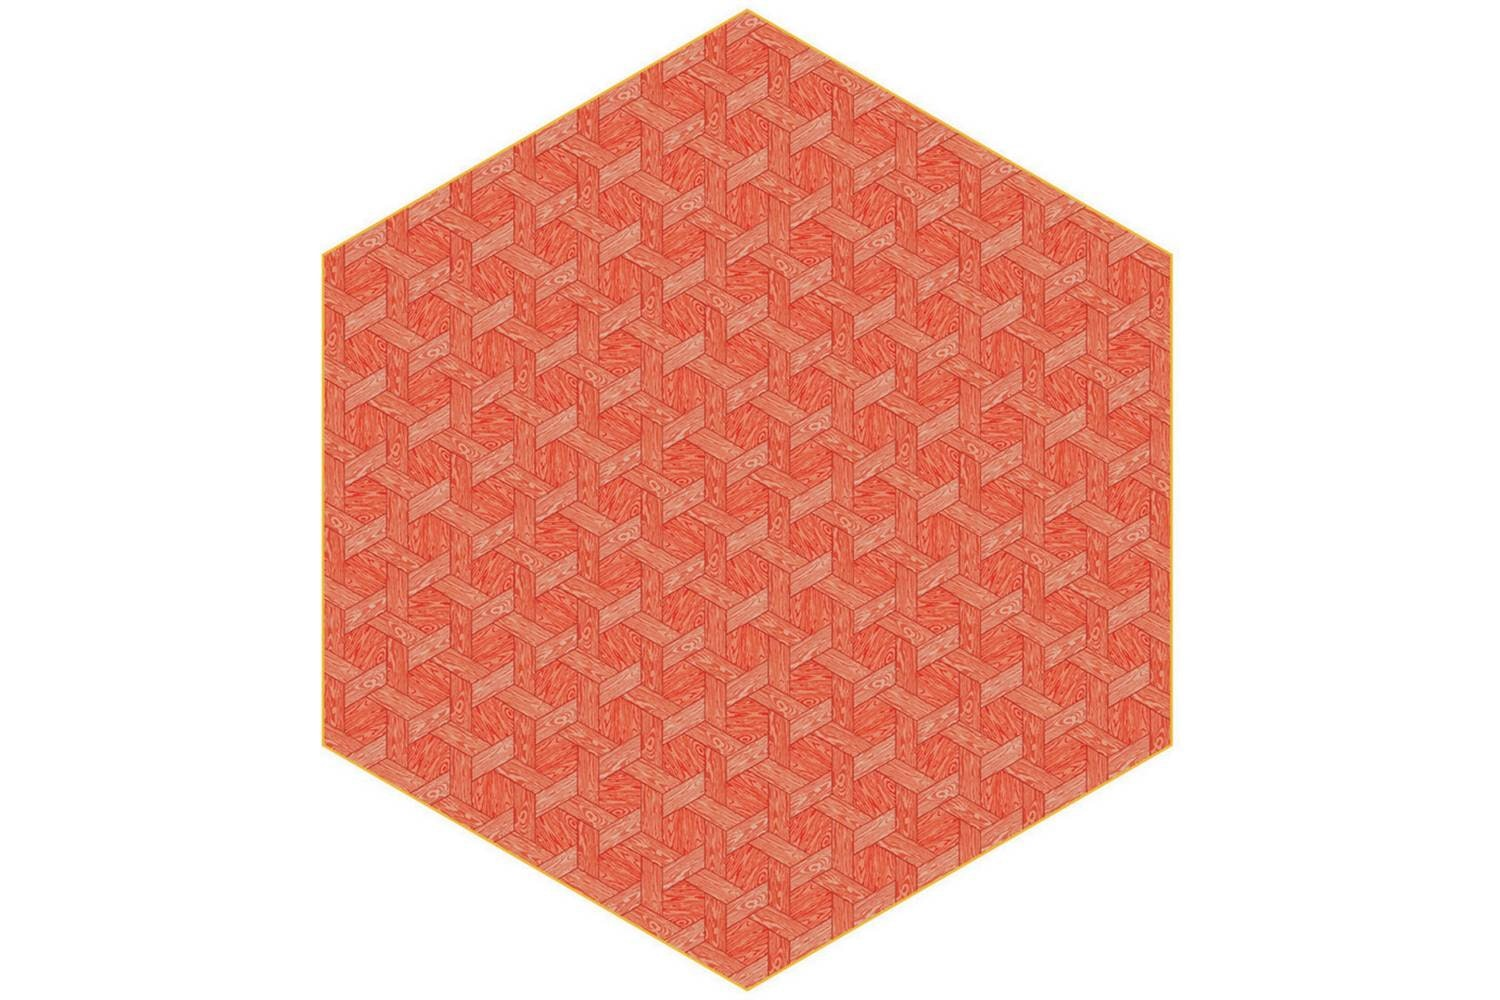 Hexagon Red Rug by Studio Job for Moooi Carpets